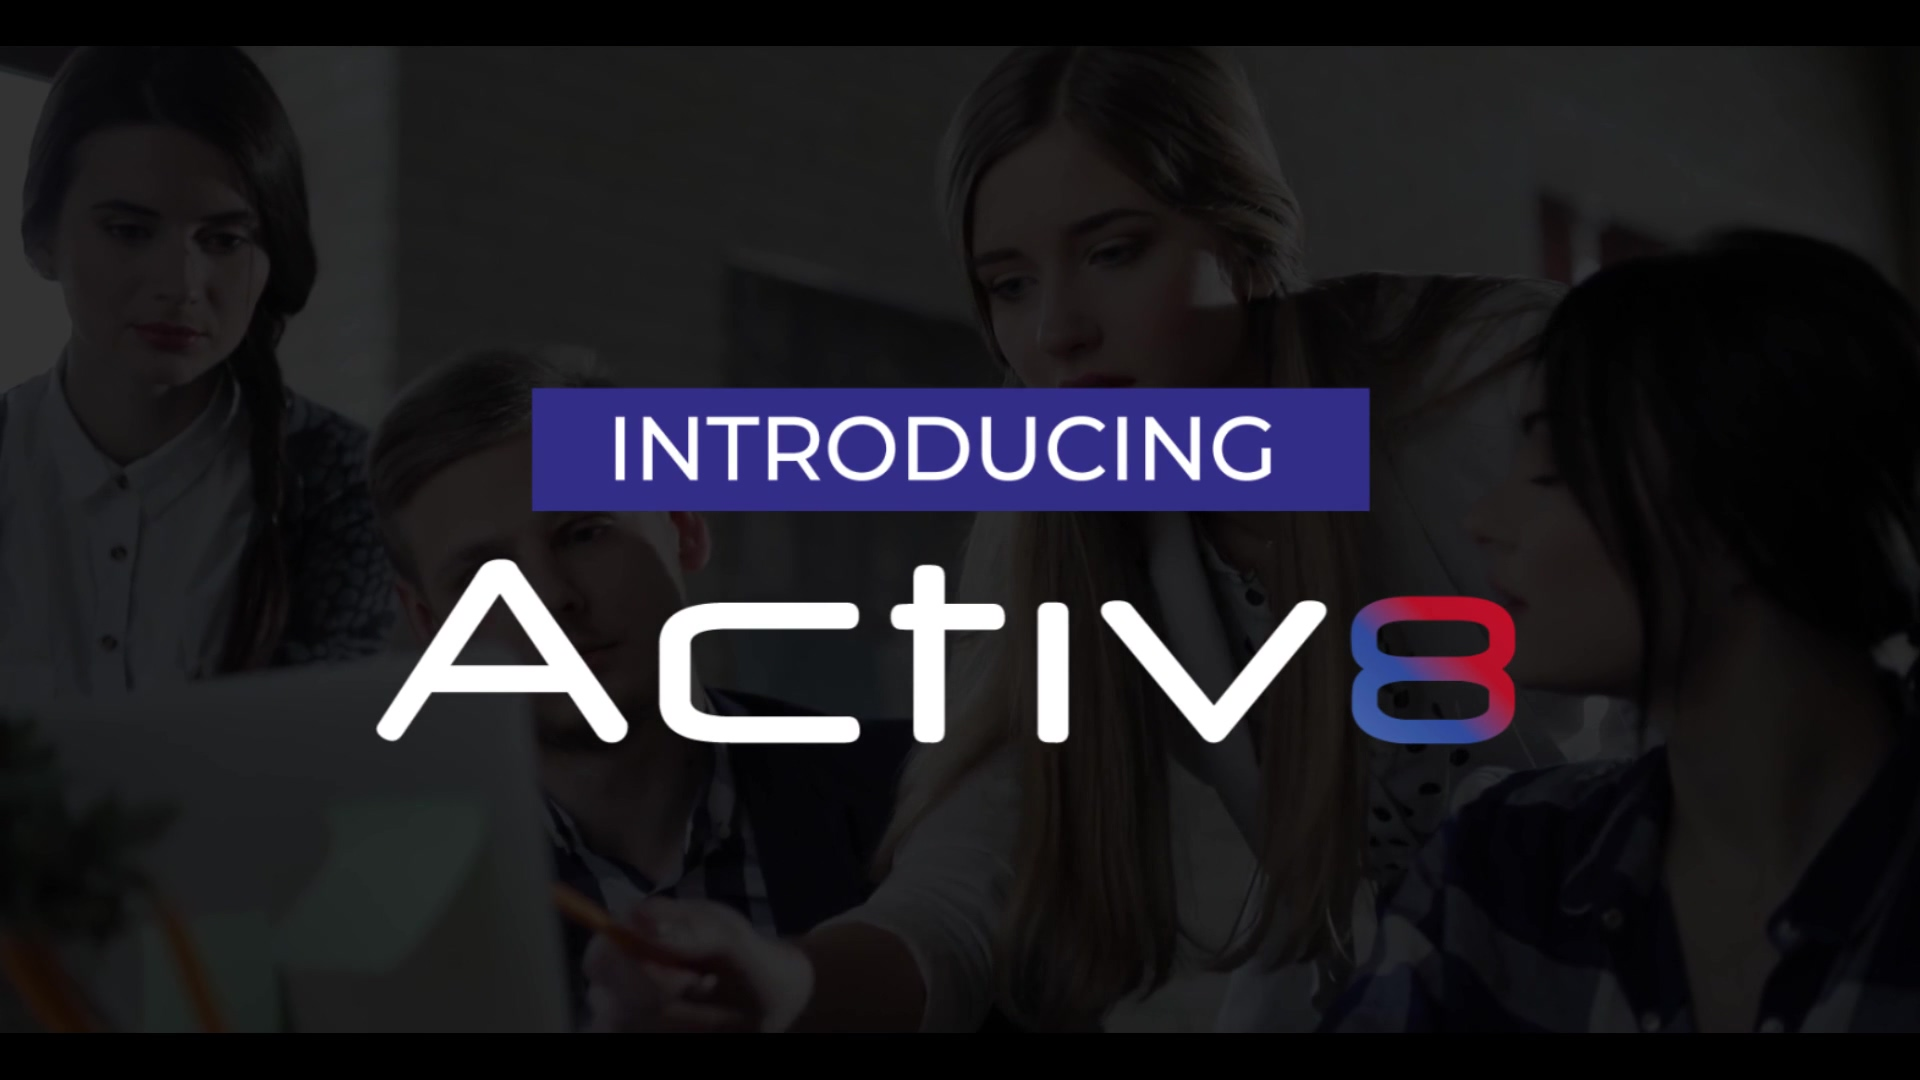 Activ8 Introduction